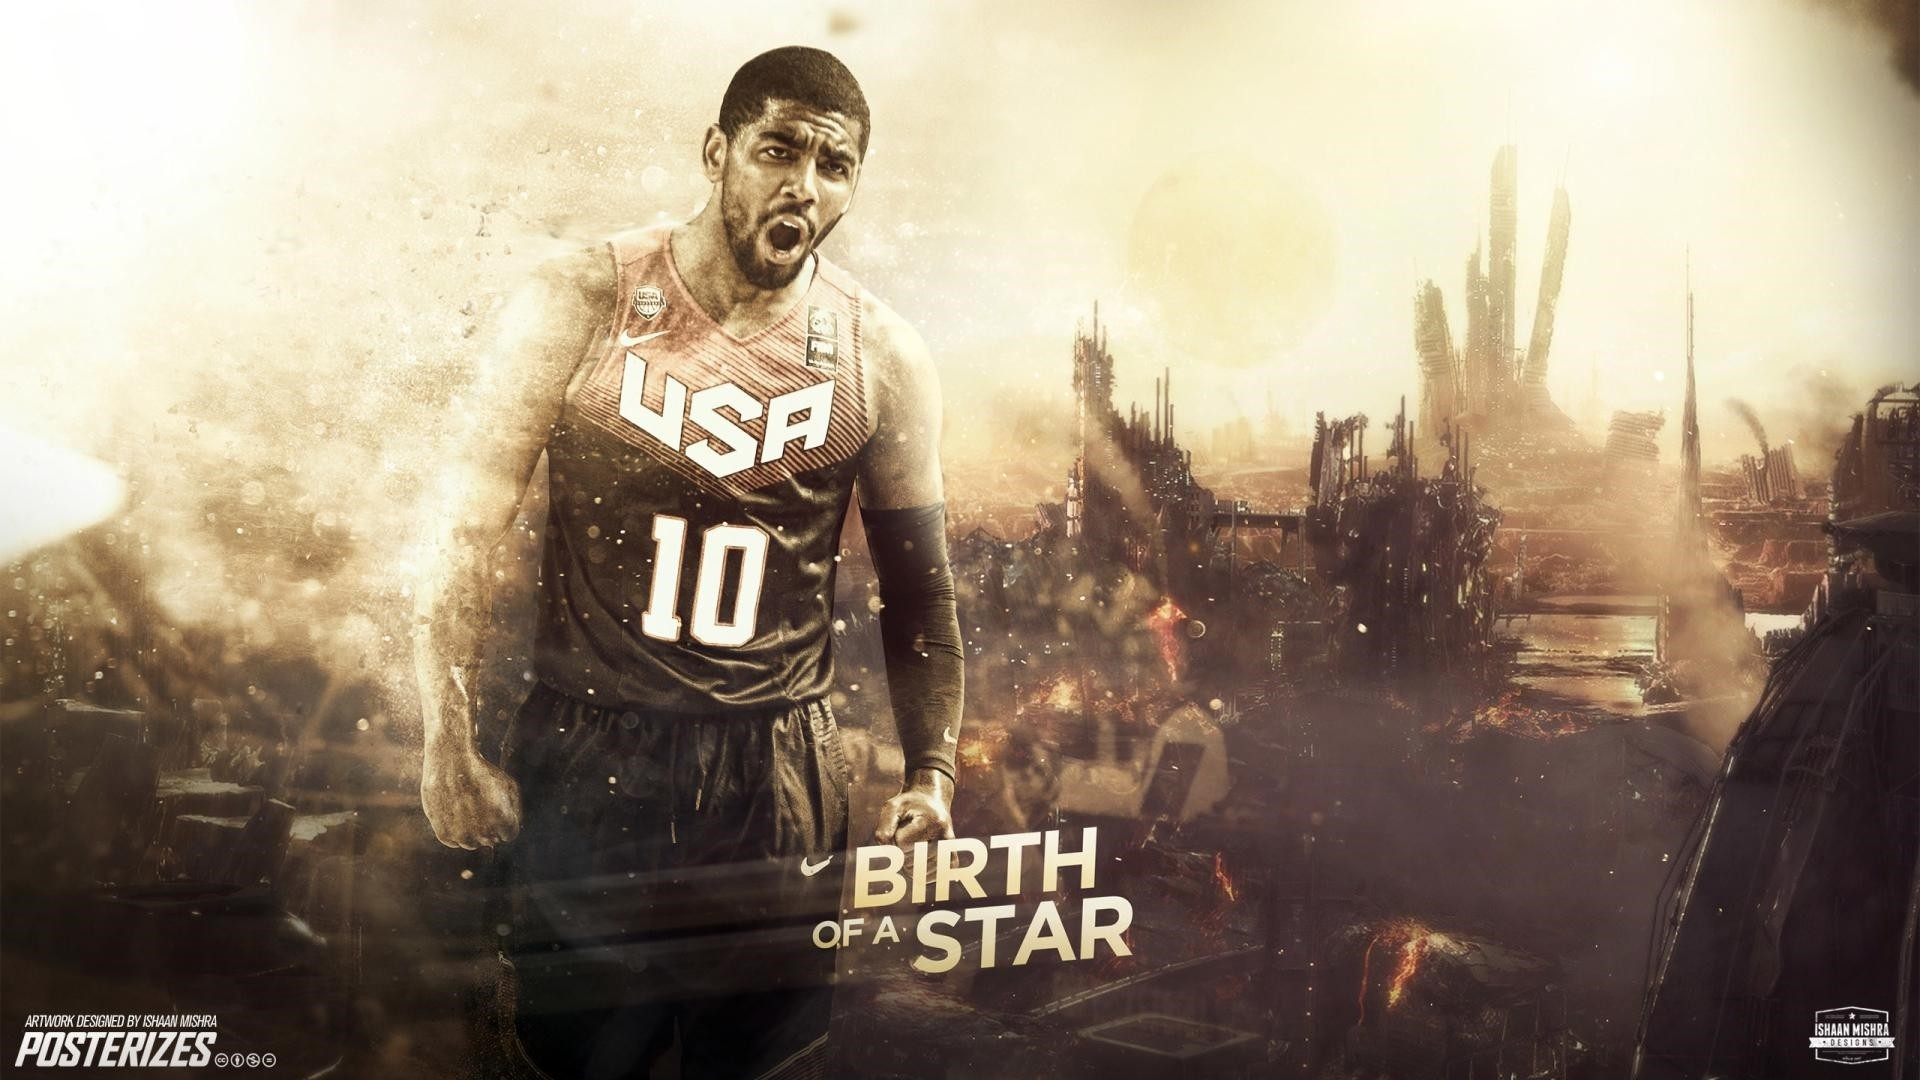 Kyrie Irving Wallpaper theme